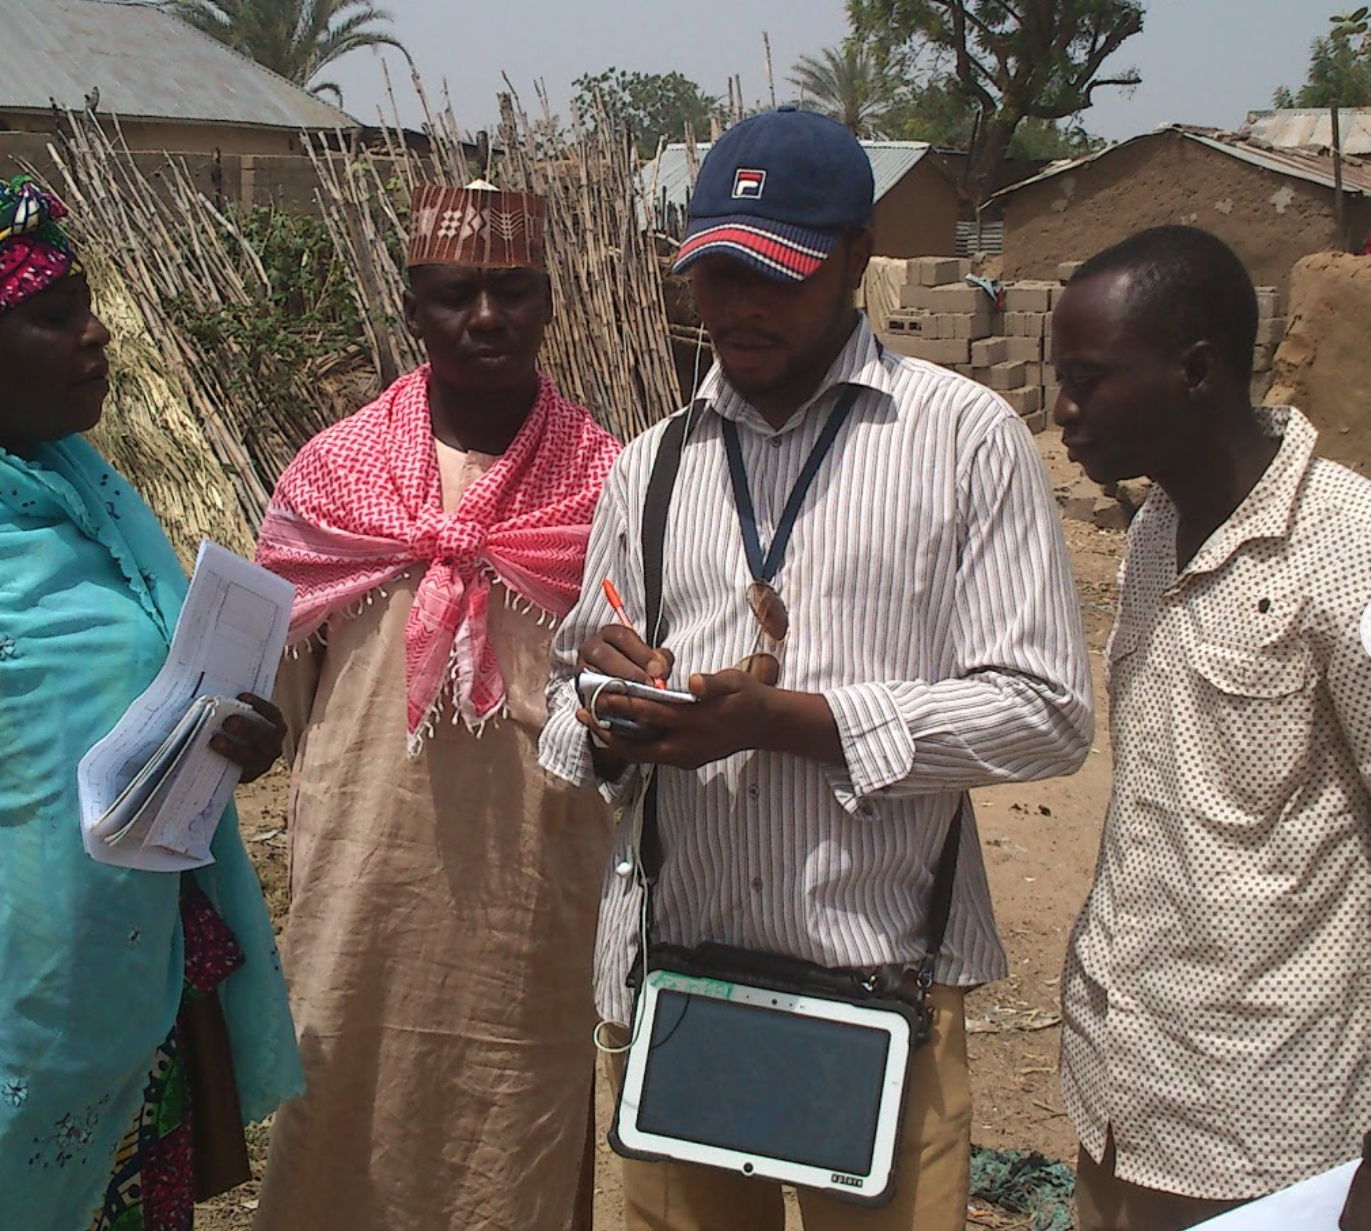 Data collectors in rural Northern Nigeria